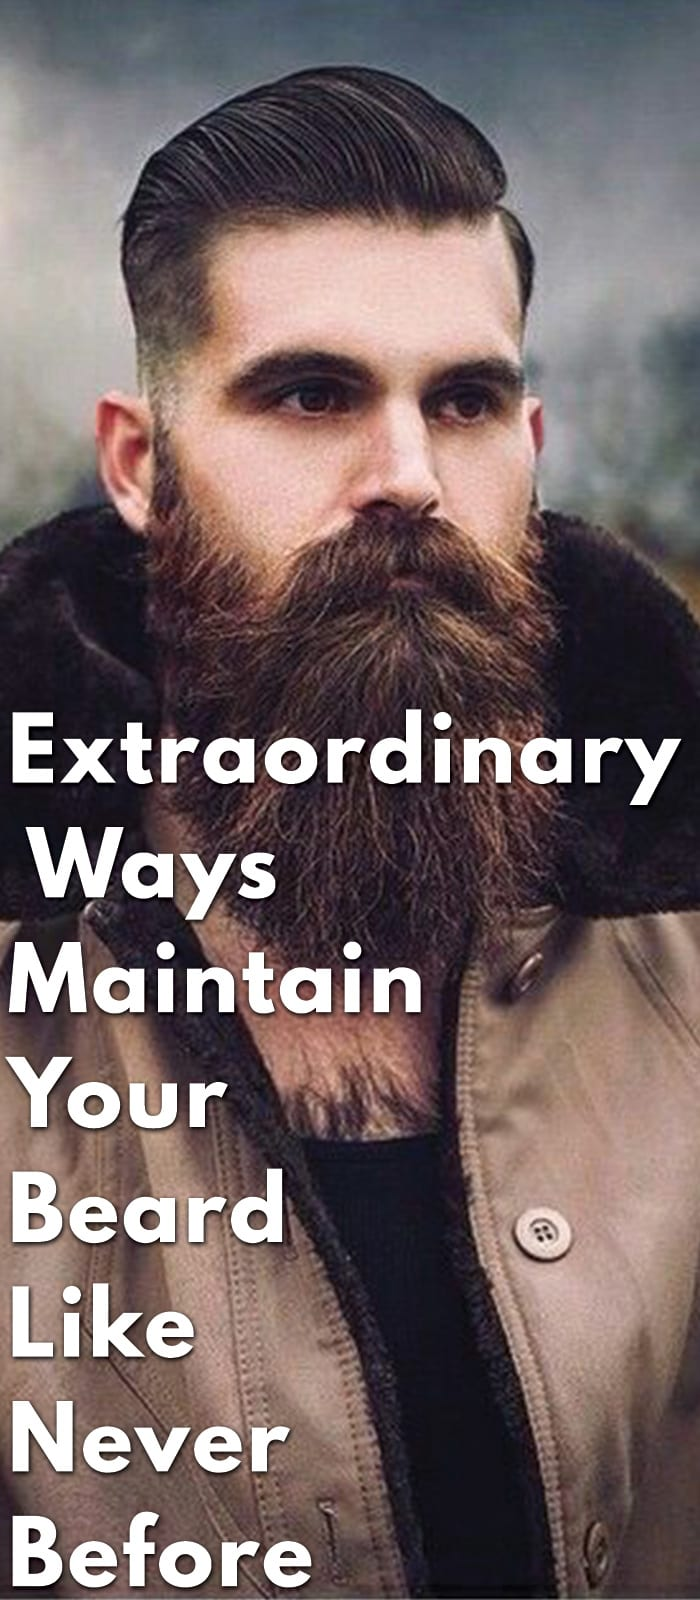 Extraordinary-Ways-Maintain-Your-Beard-Like-Never-Before.